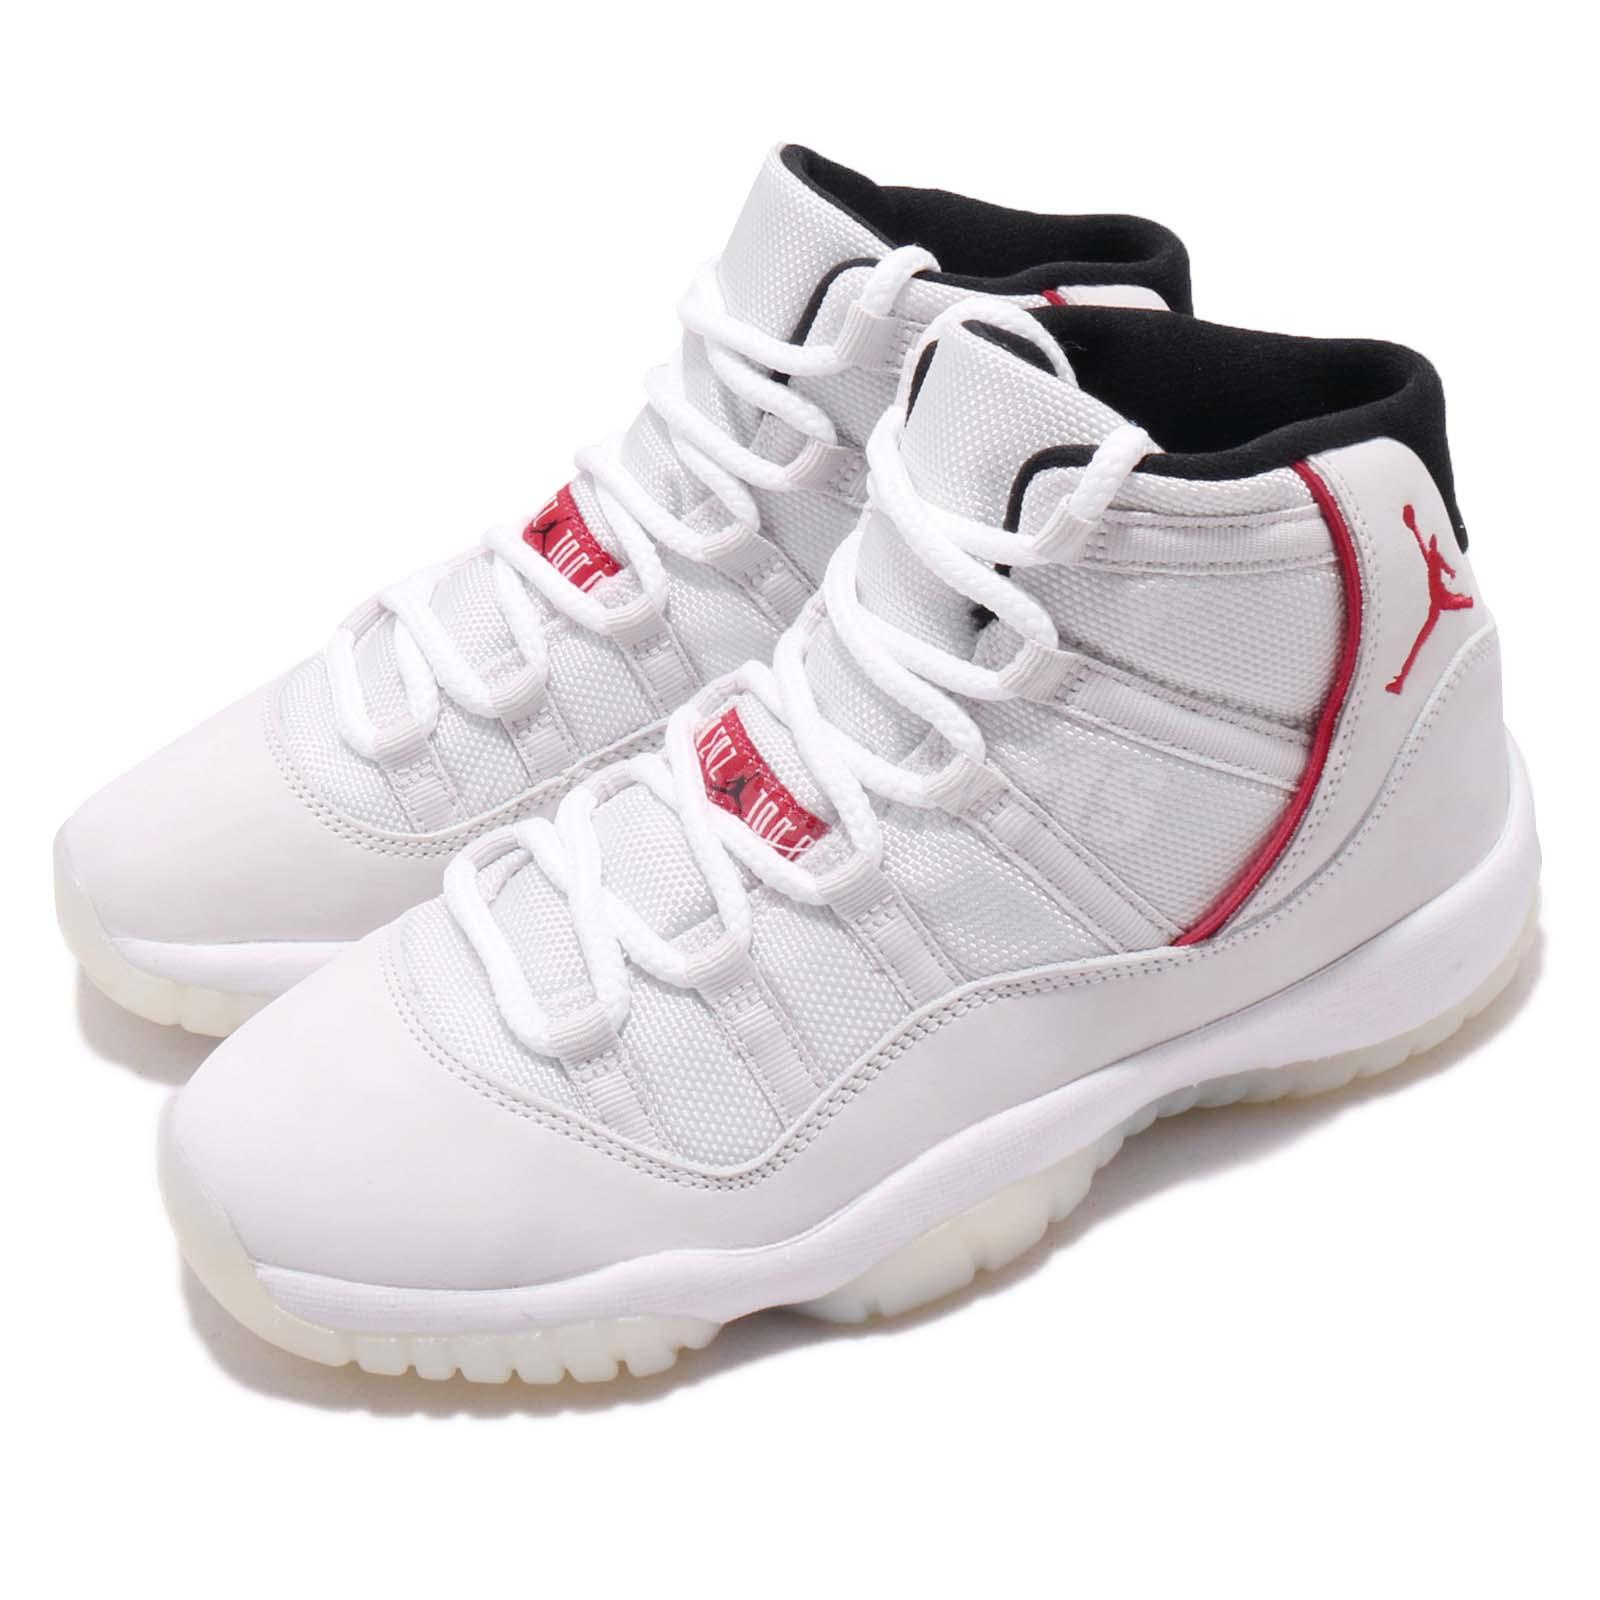 06f04a52d20990 Details about Nike Air Jordan 11 Retro BG GS XI Platinum Tint Womens Youth  Shoes 378038-016